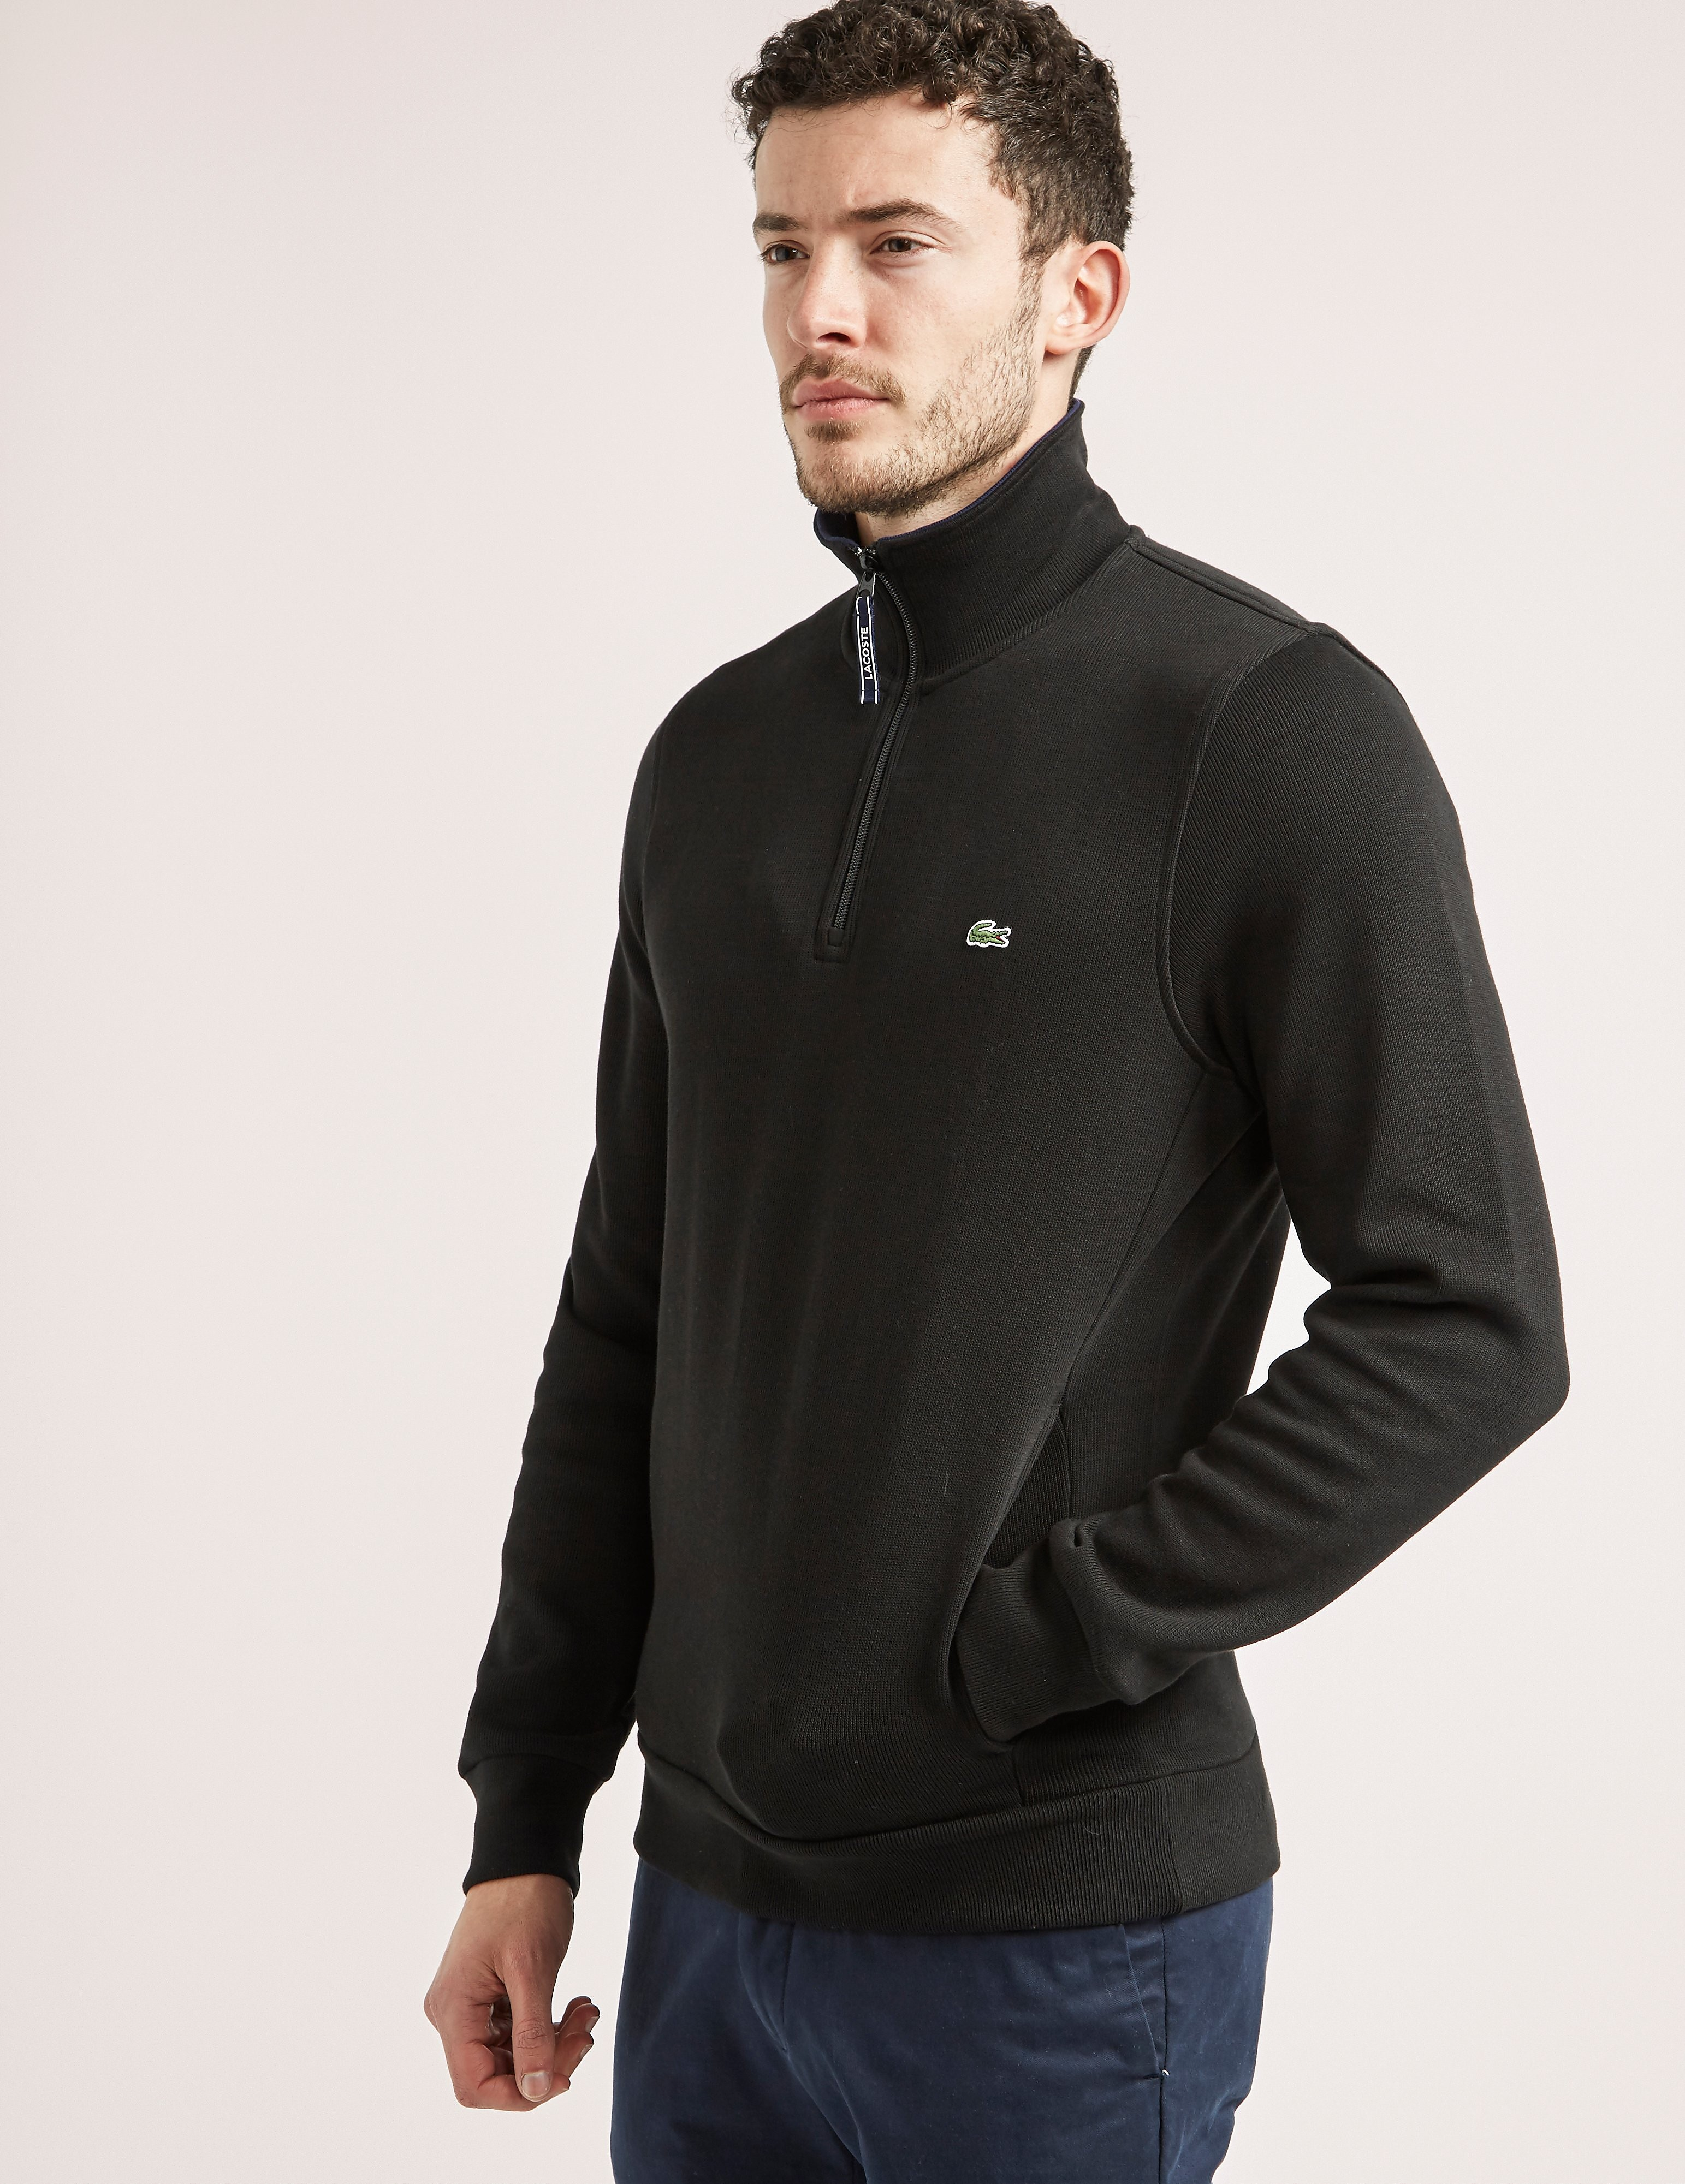 Lacoste 1/2 Zip Interlock Sweatshirt